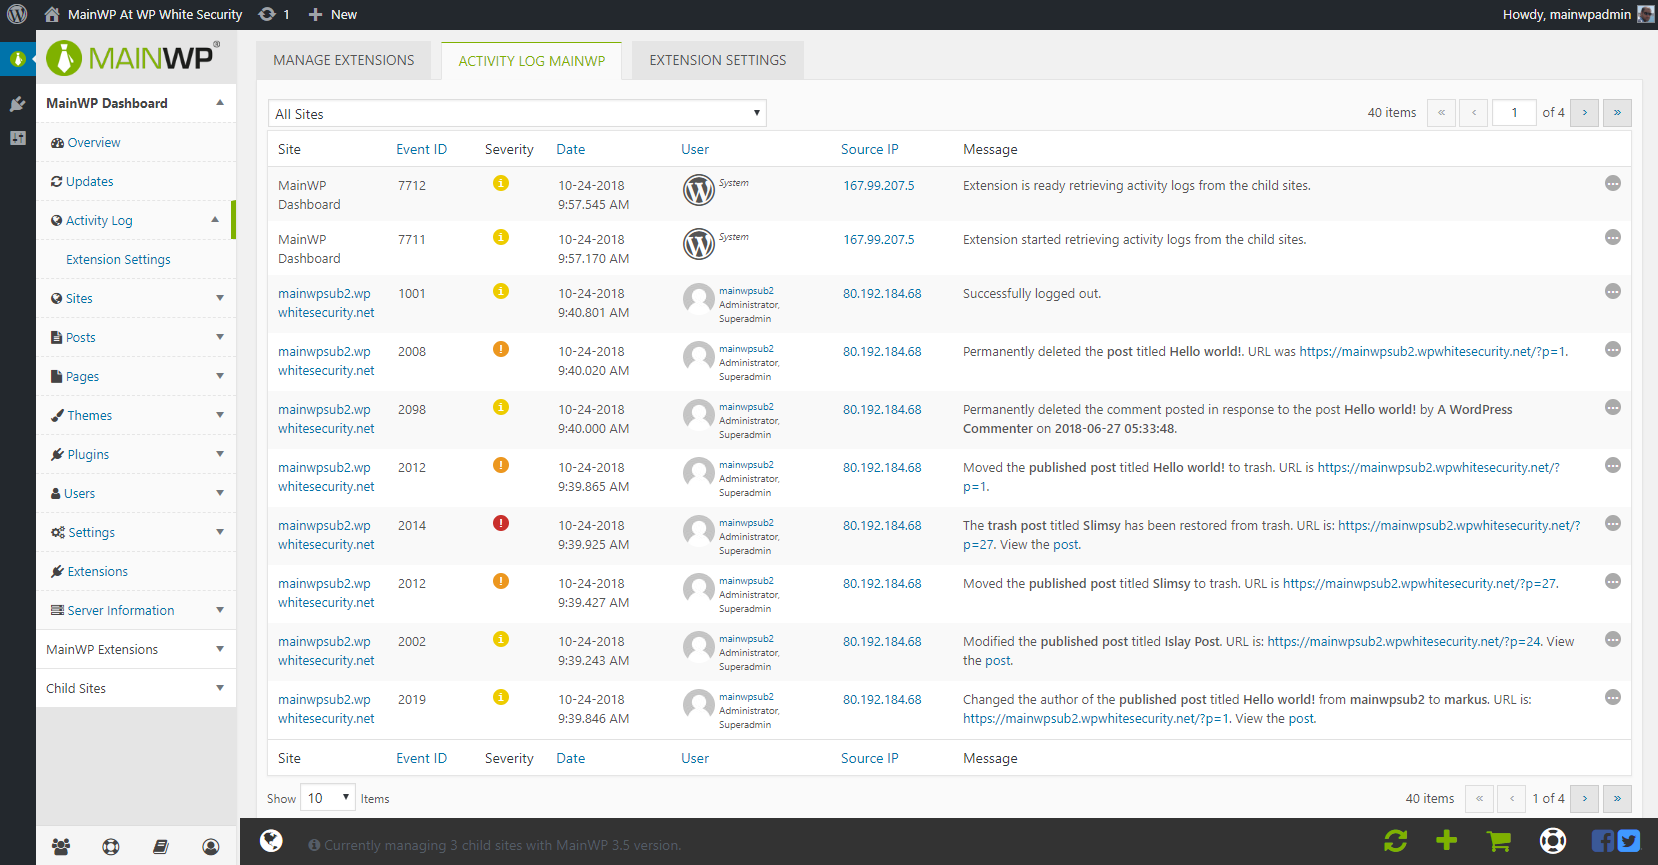 The activity log in MainWP dashboard